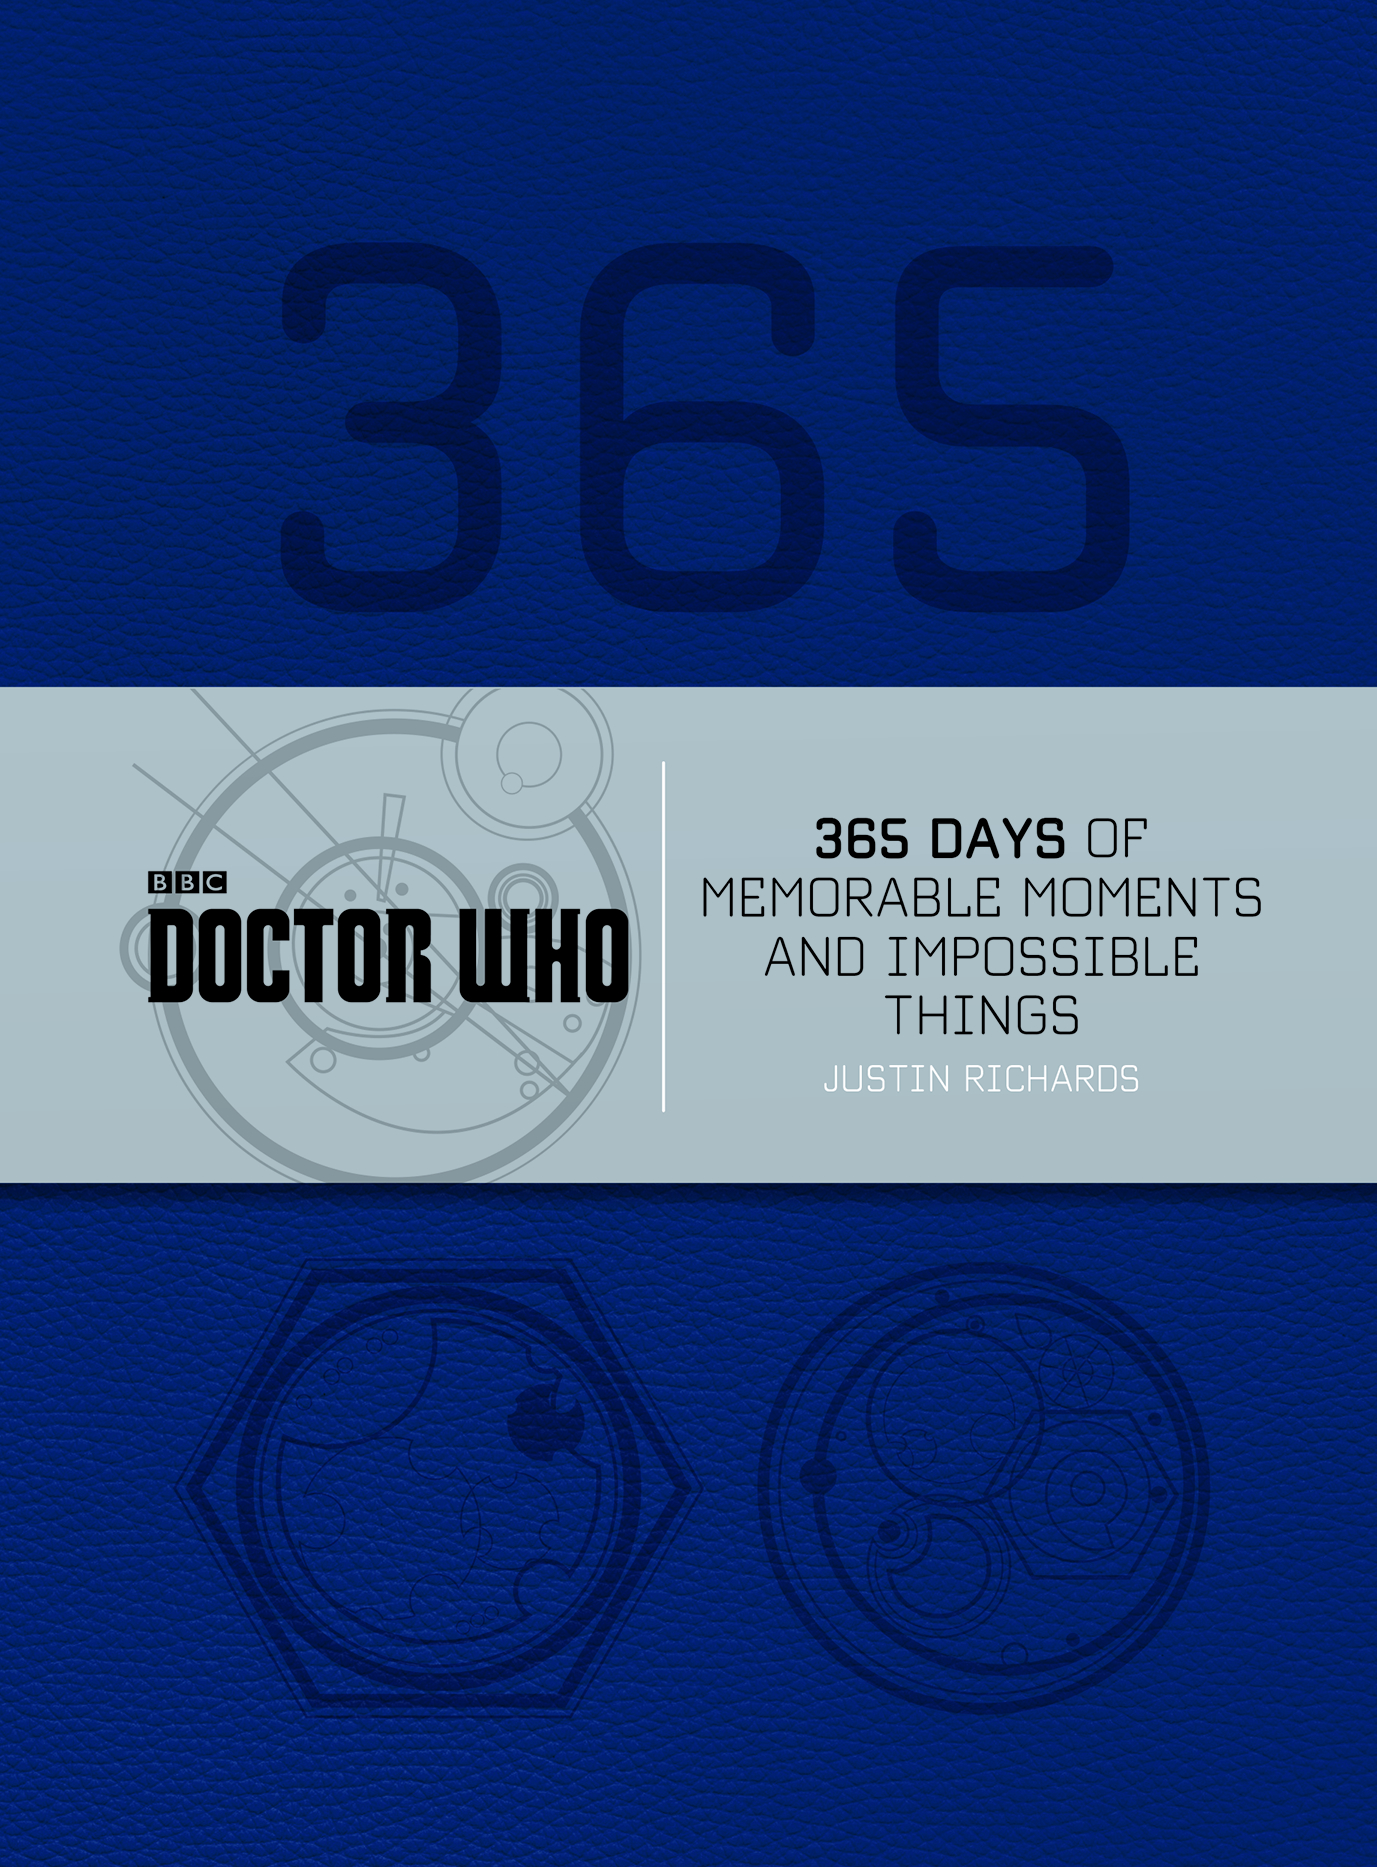 DOCTOR WHO 365 DAYS MEMORABLE MOMENTS IMPOSSIBLE THINGS